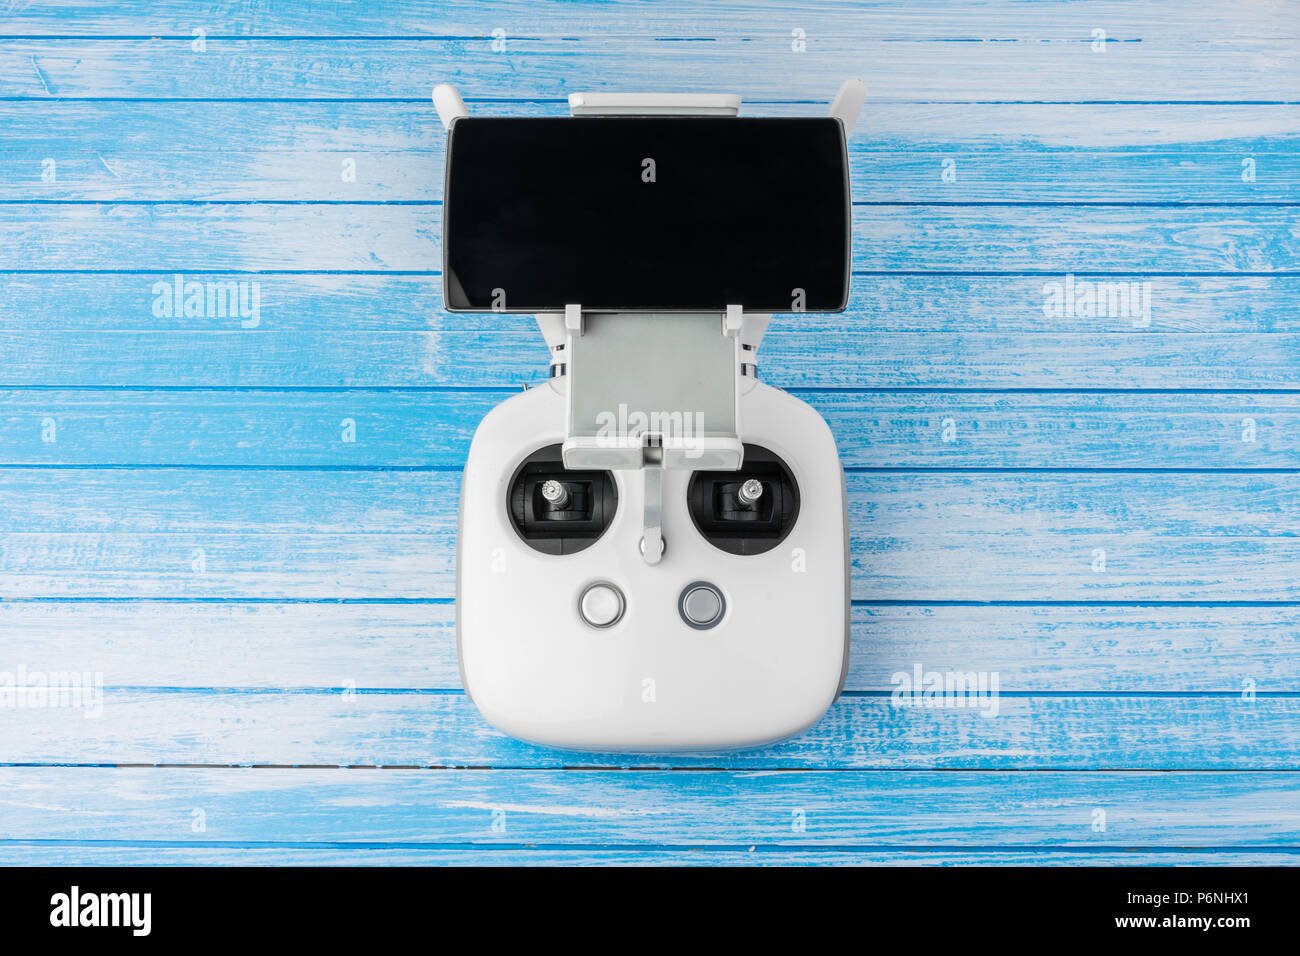 Modern High Tech White Drone Remote Controller With Smart Phone Antennas Connected And On Blue Wood Background Quadcopter Concept Top Angle